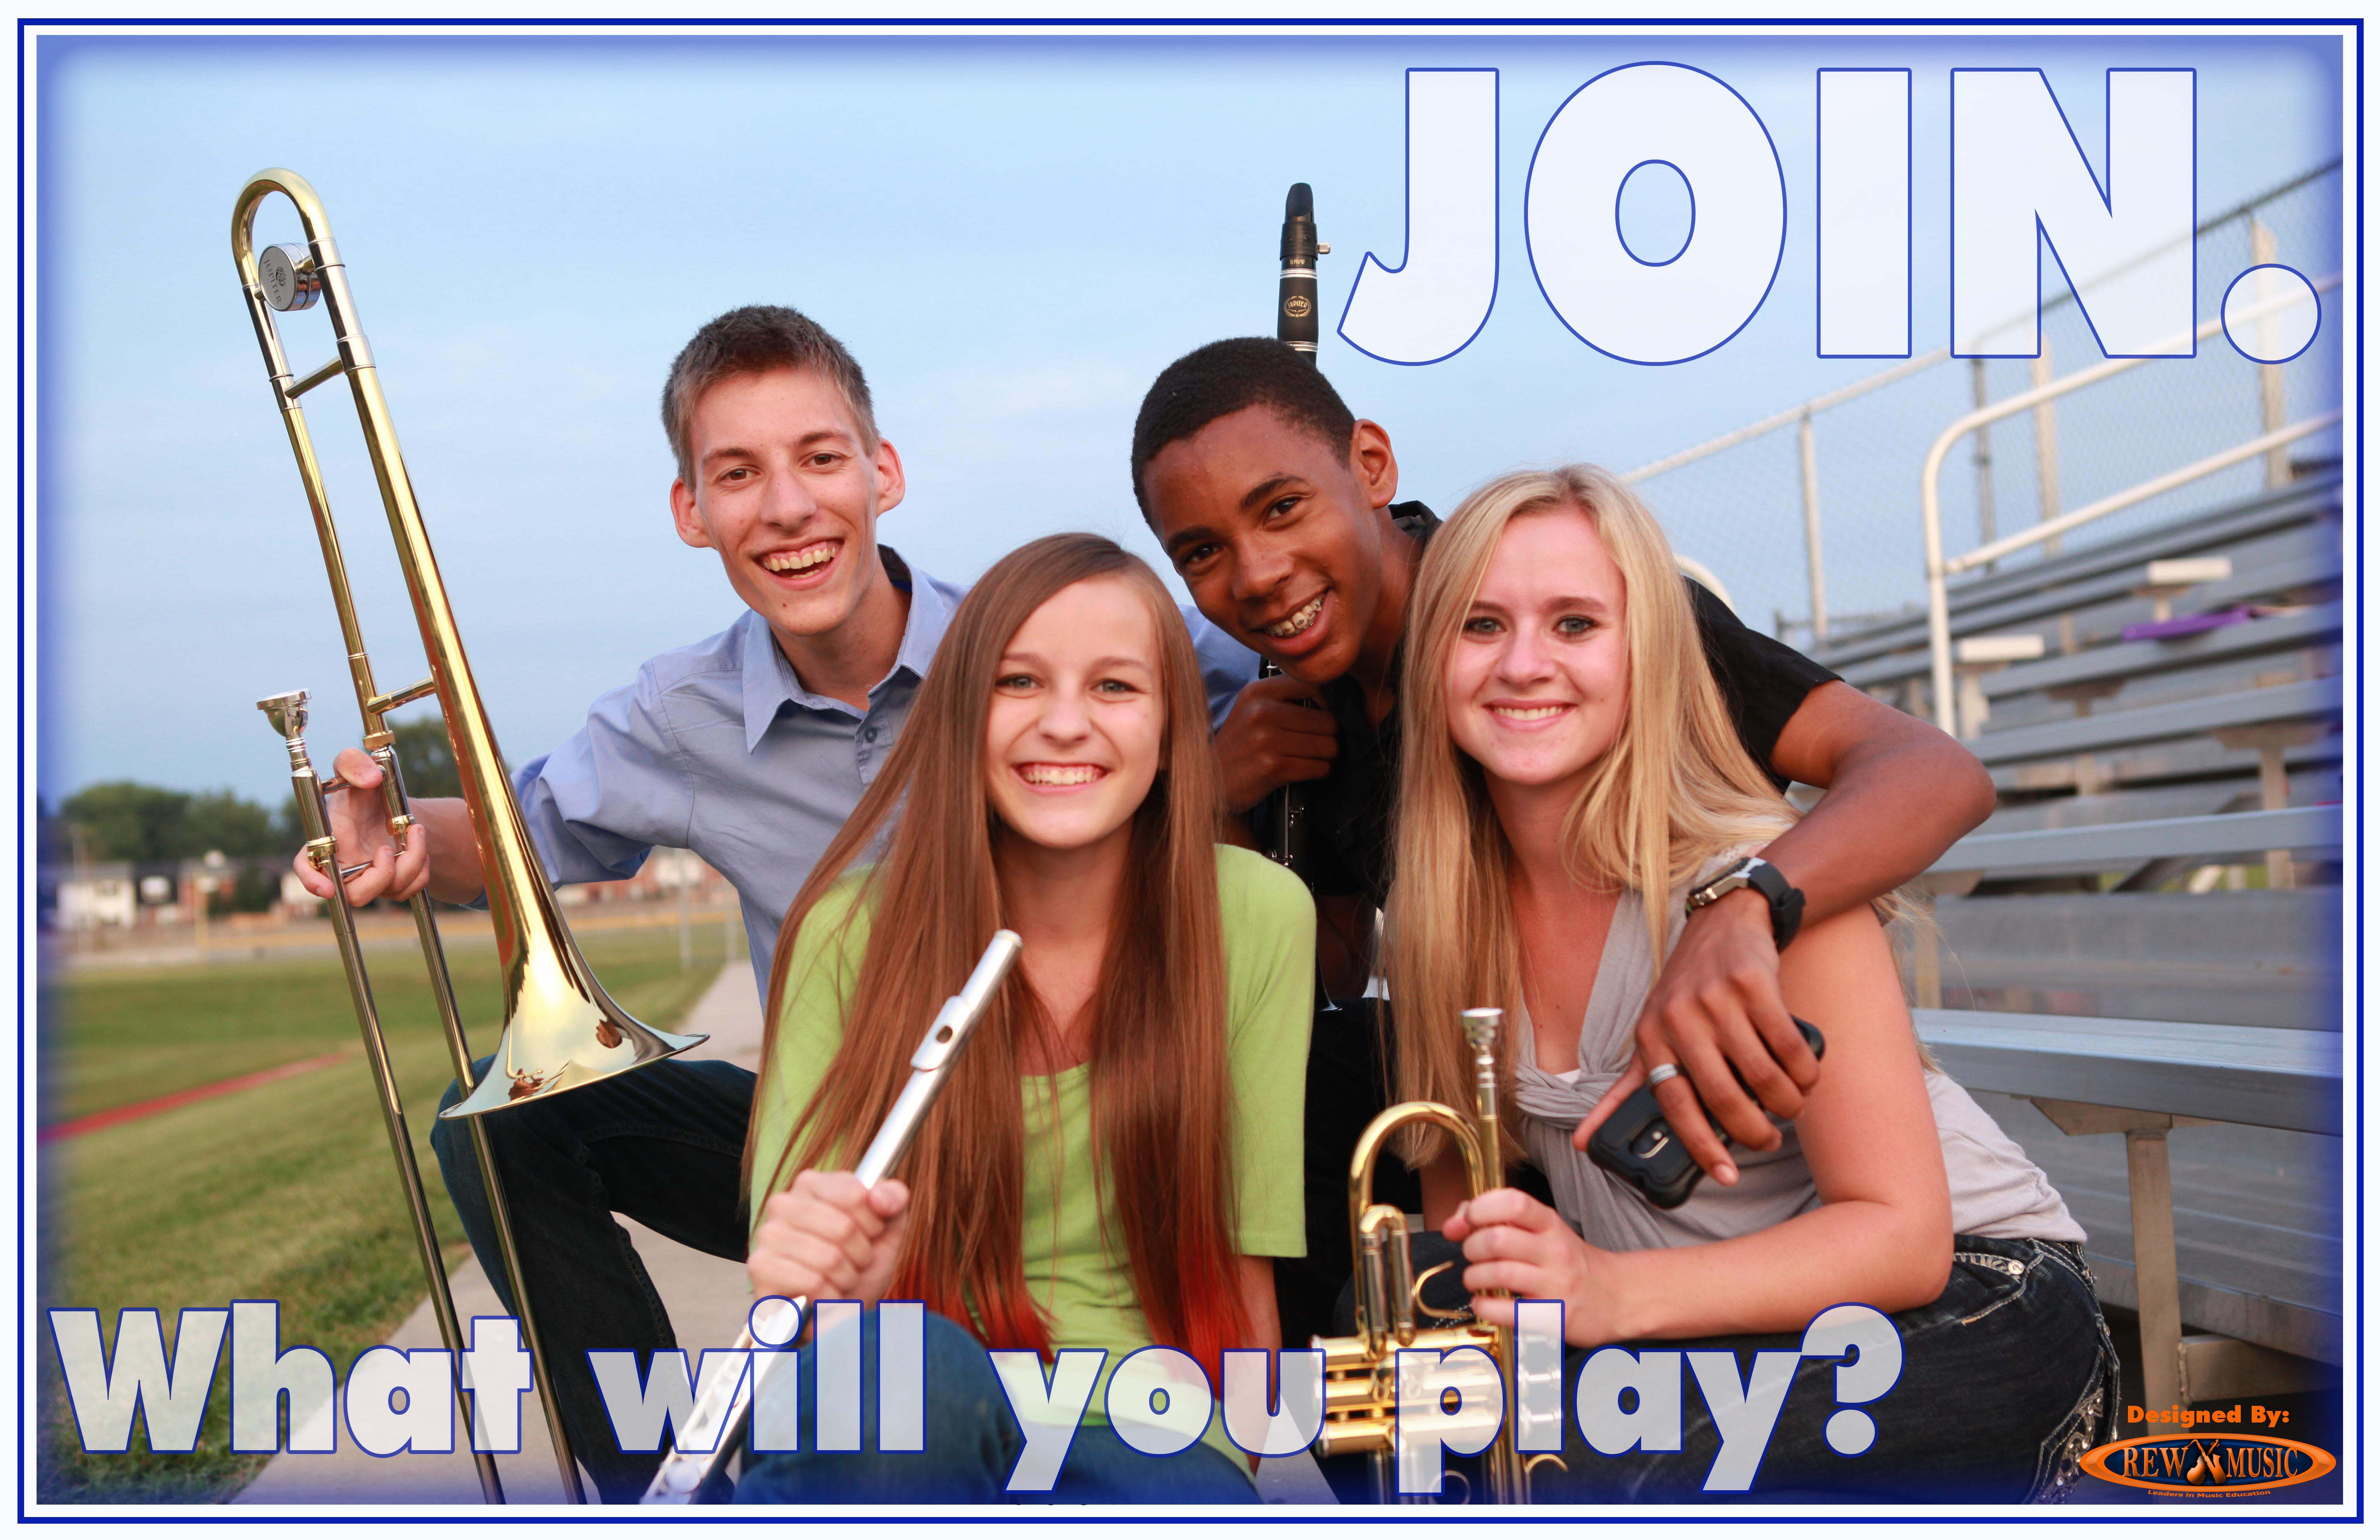 Join the School Band Group What Will You Play?